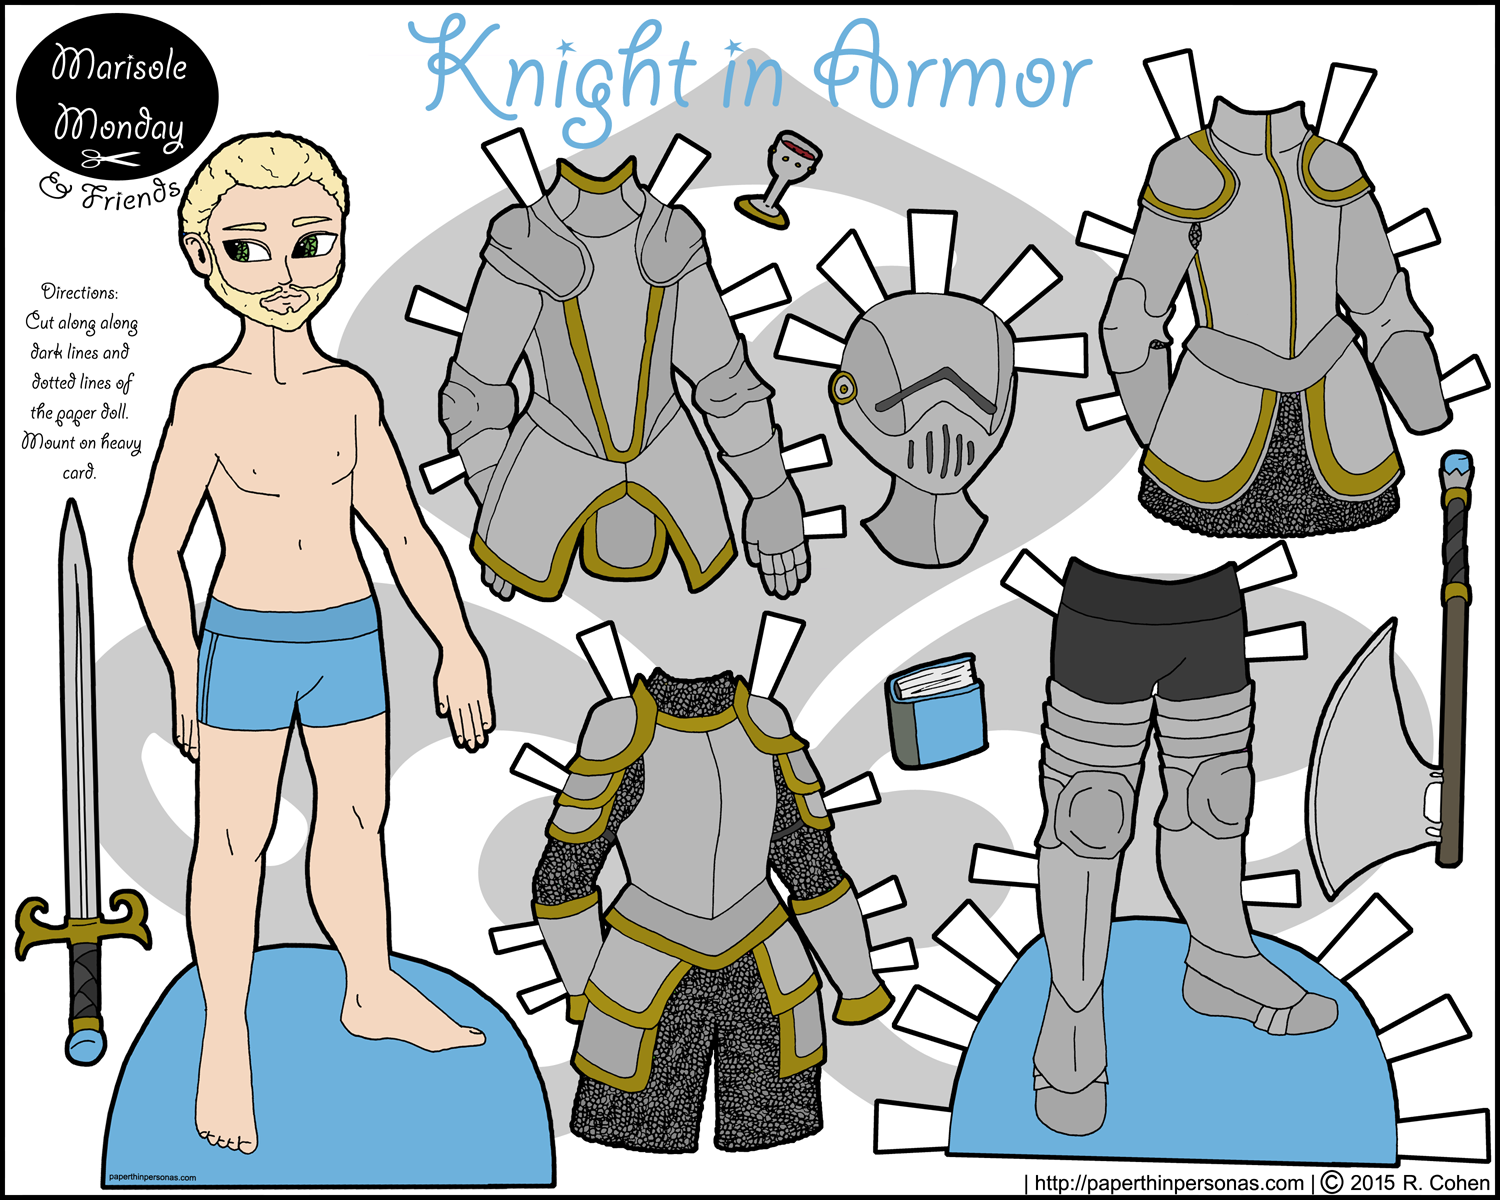 Maiden clipart knights armor For paperthinpersonas Monday on will